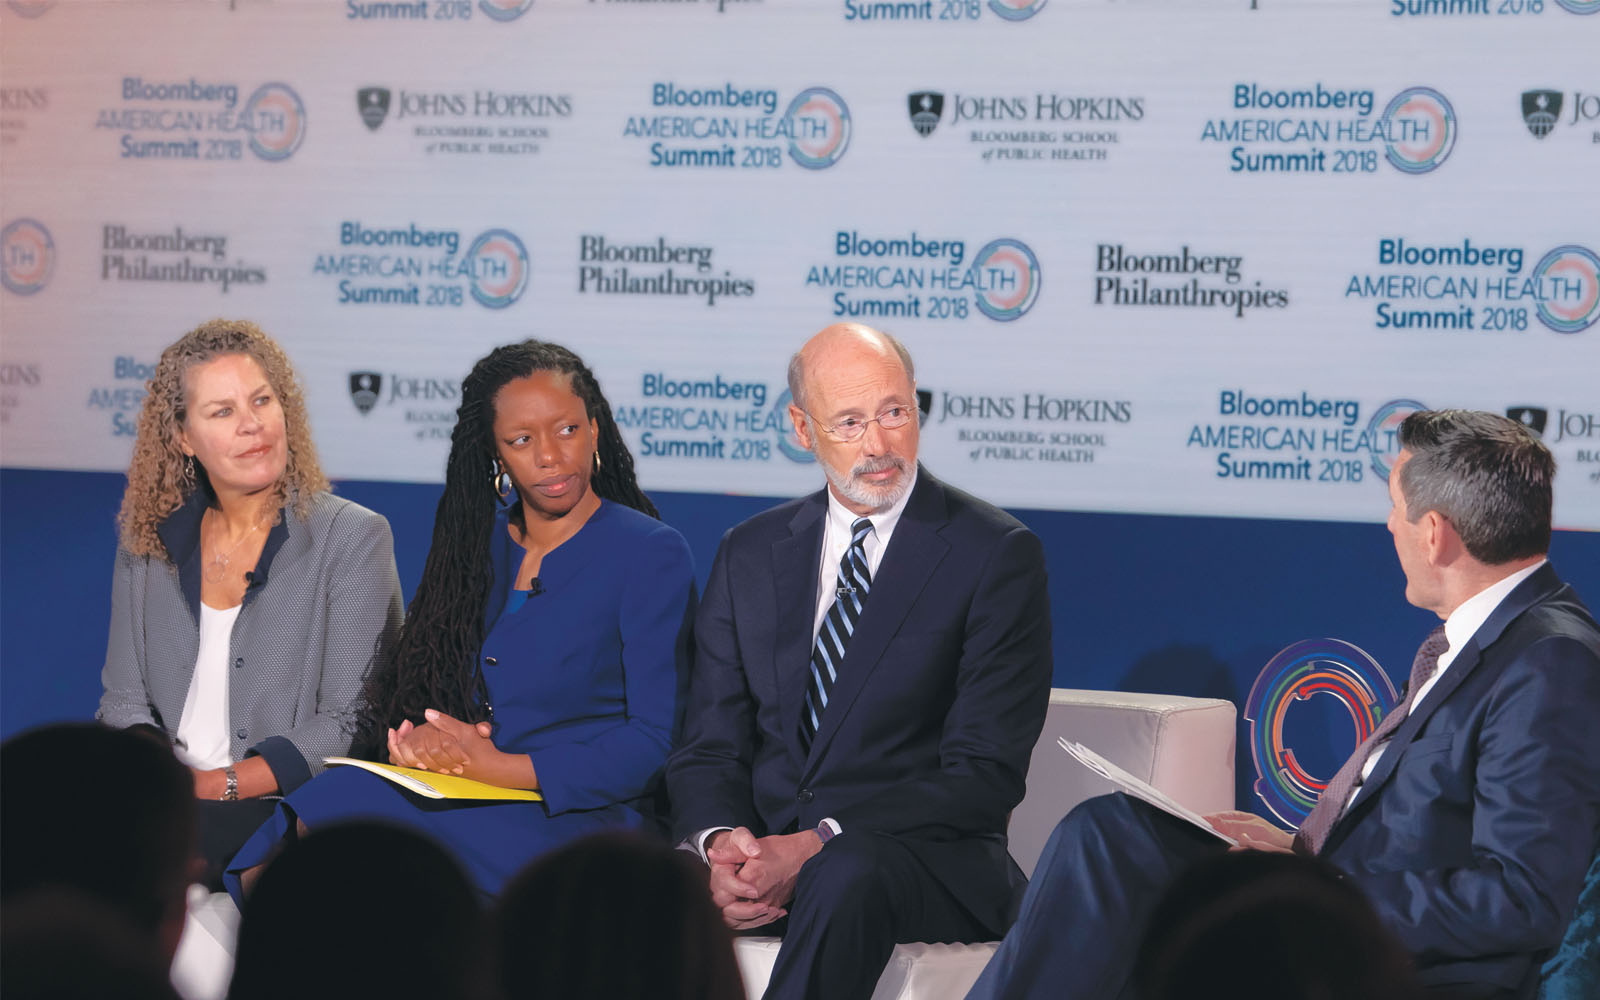 panel discussion on opioid addiction with Pennsylvania Governor Tom Wolf